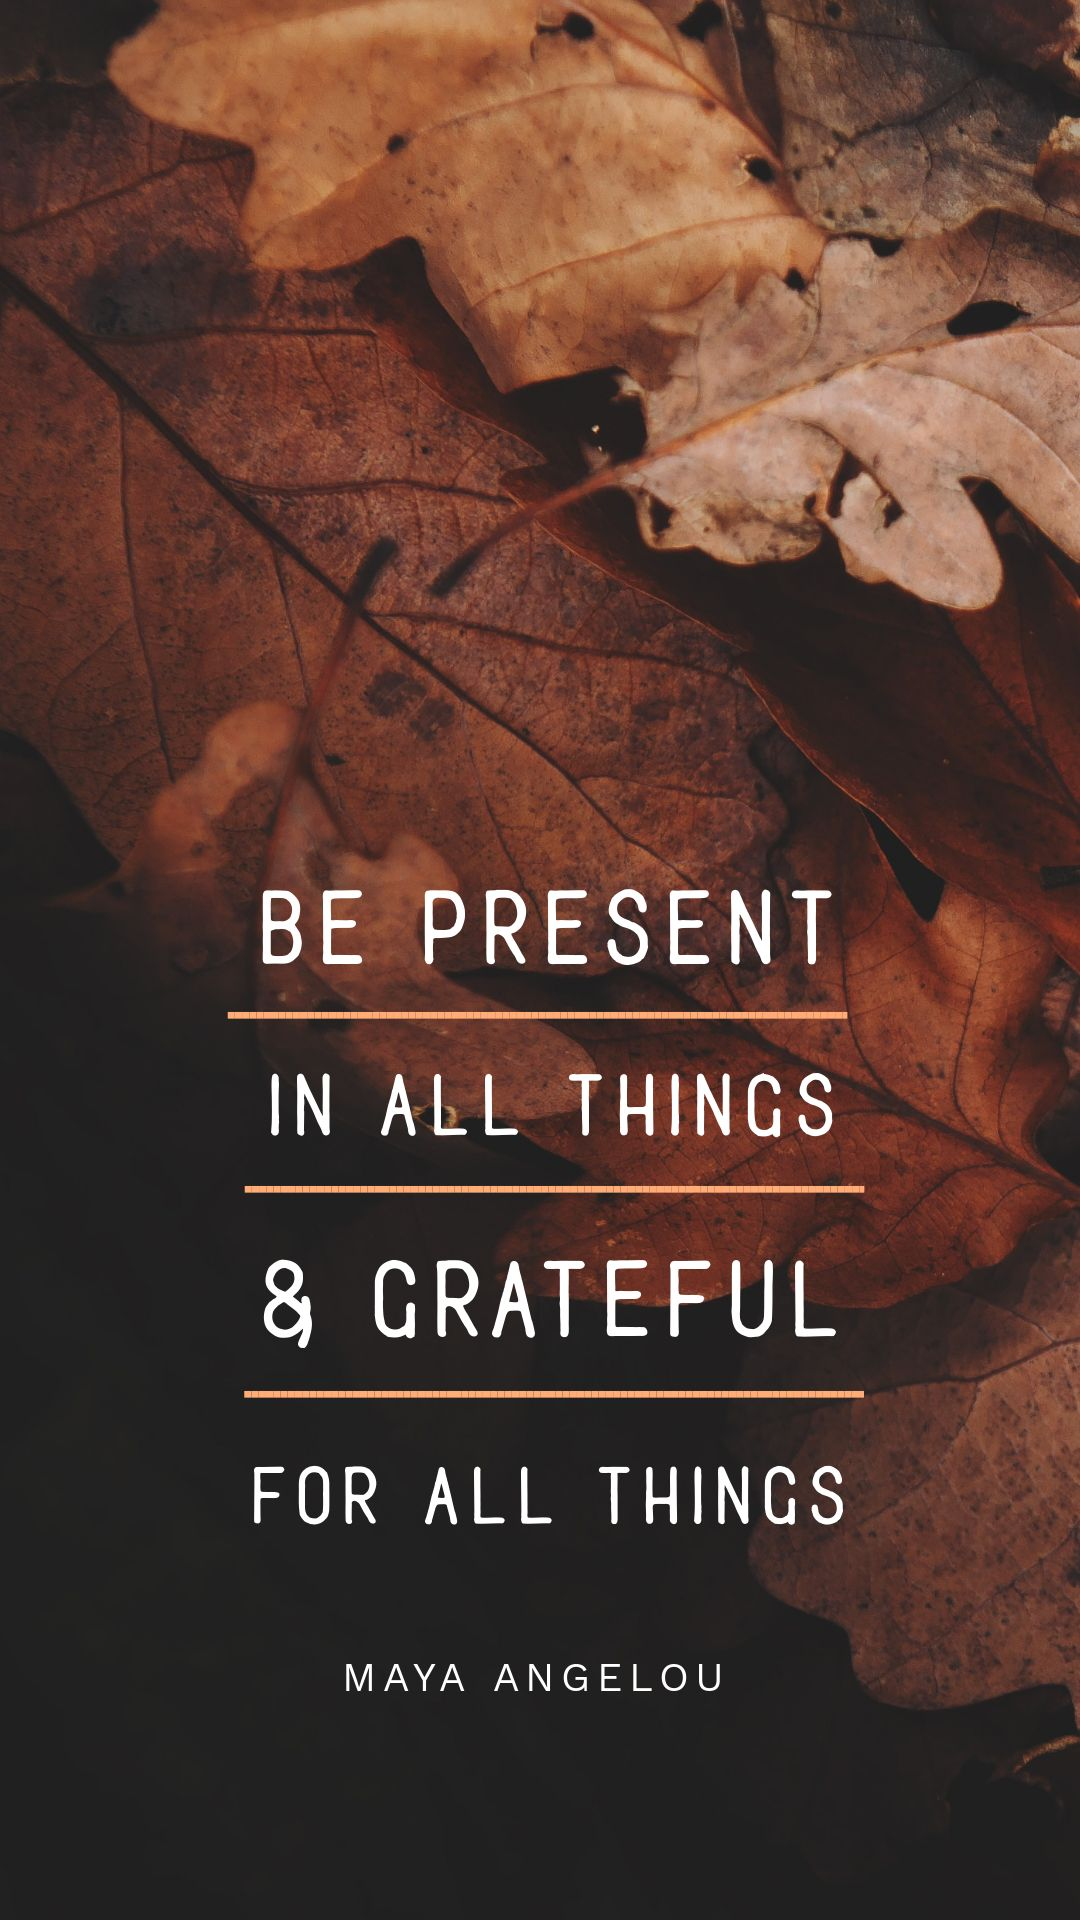 Maya Angelou Quote created in Easil - Thanksgiving Images and Ideas for Social Media (Seasonal Marketing Series)